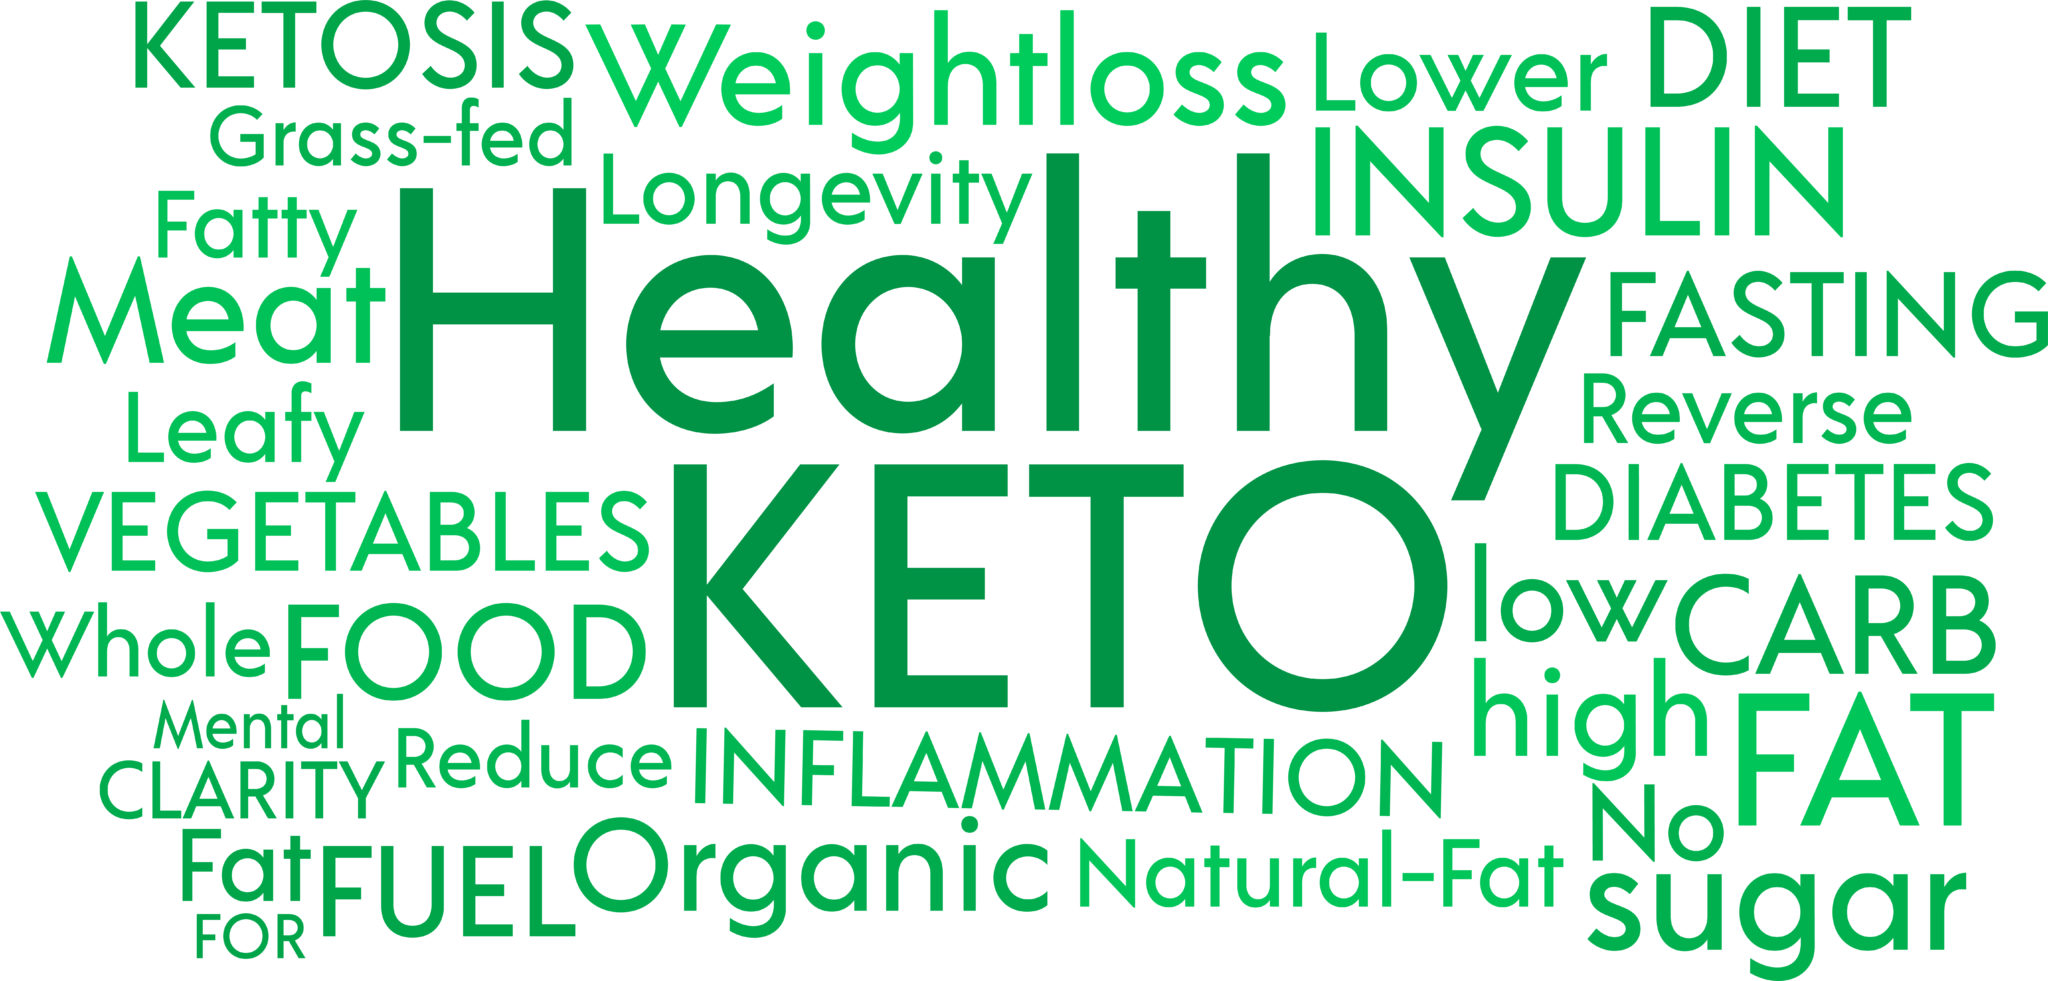 Ketogenic Diets and Endurance Sports